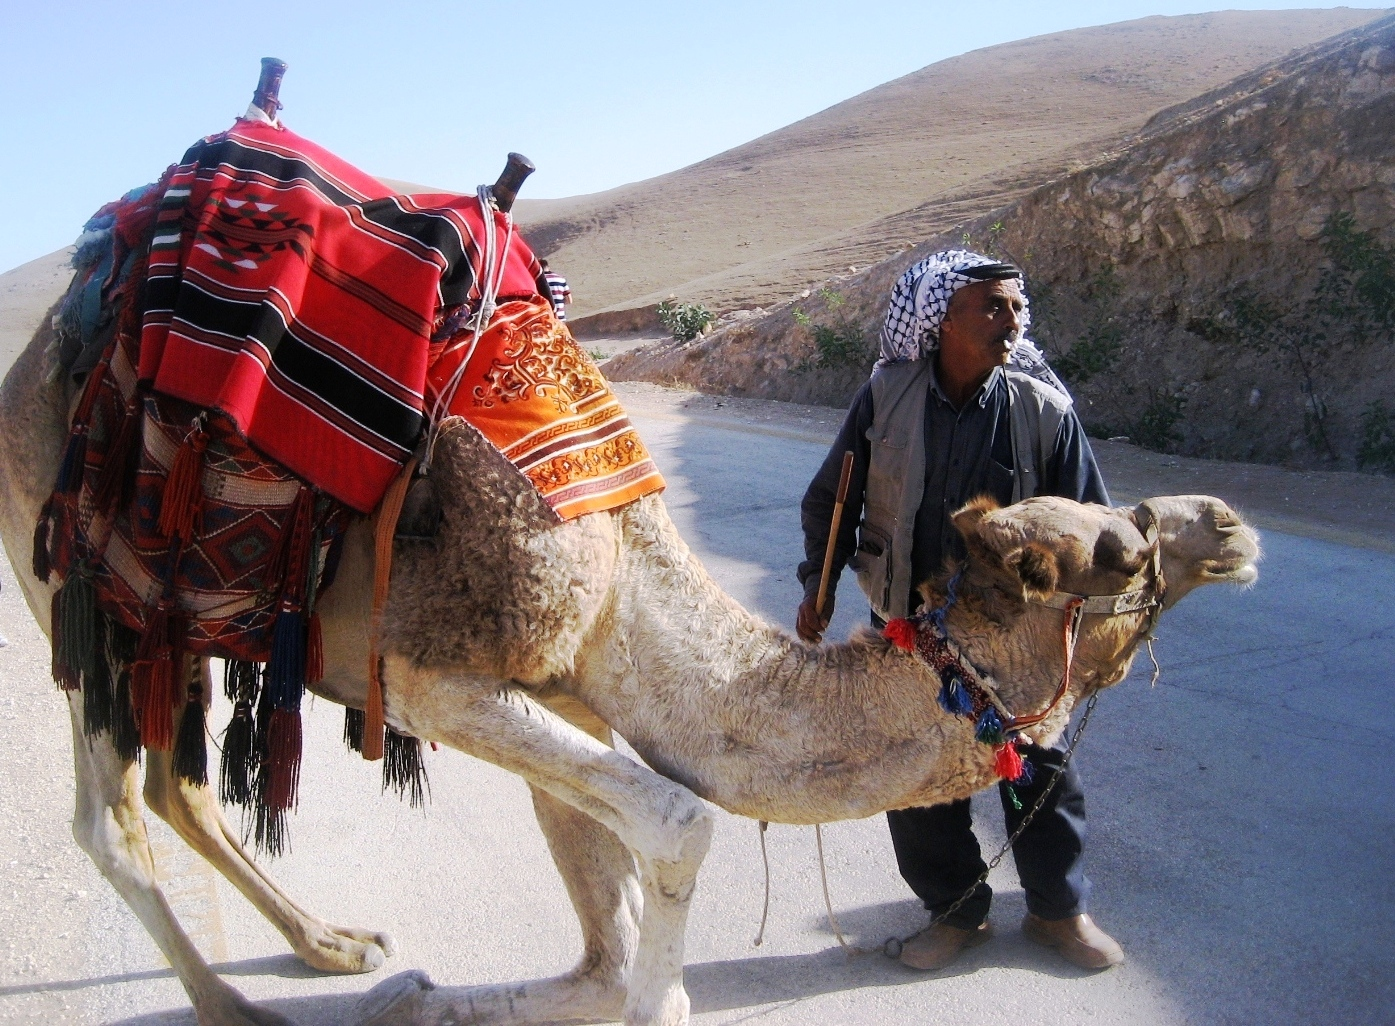 Camel Bends Down For Rider